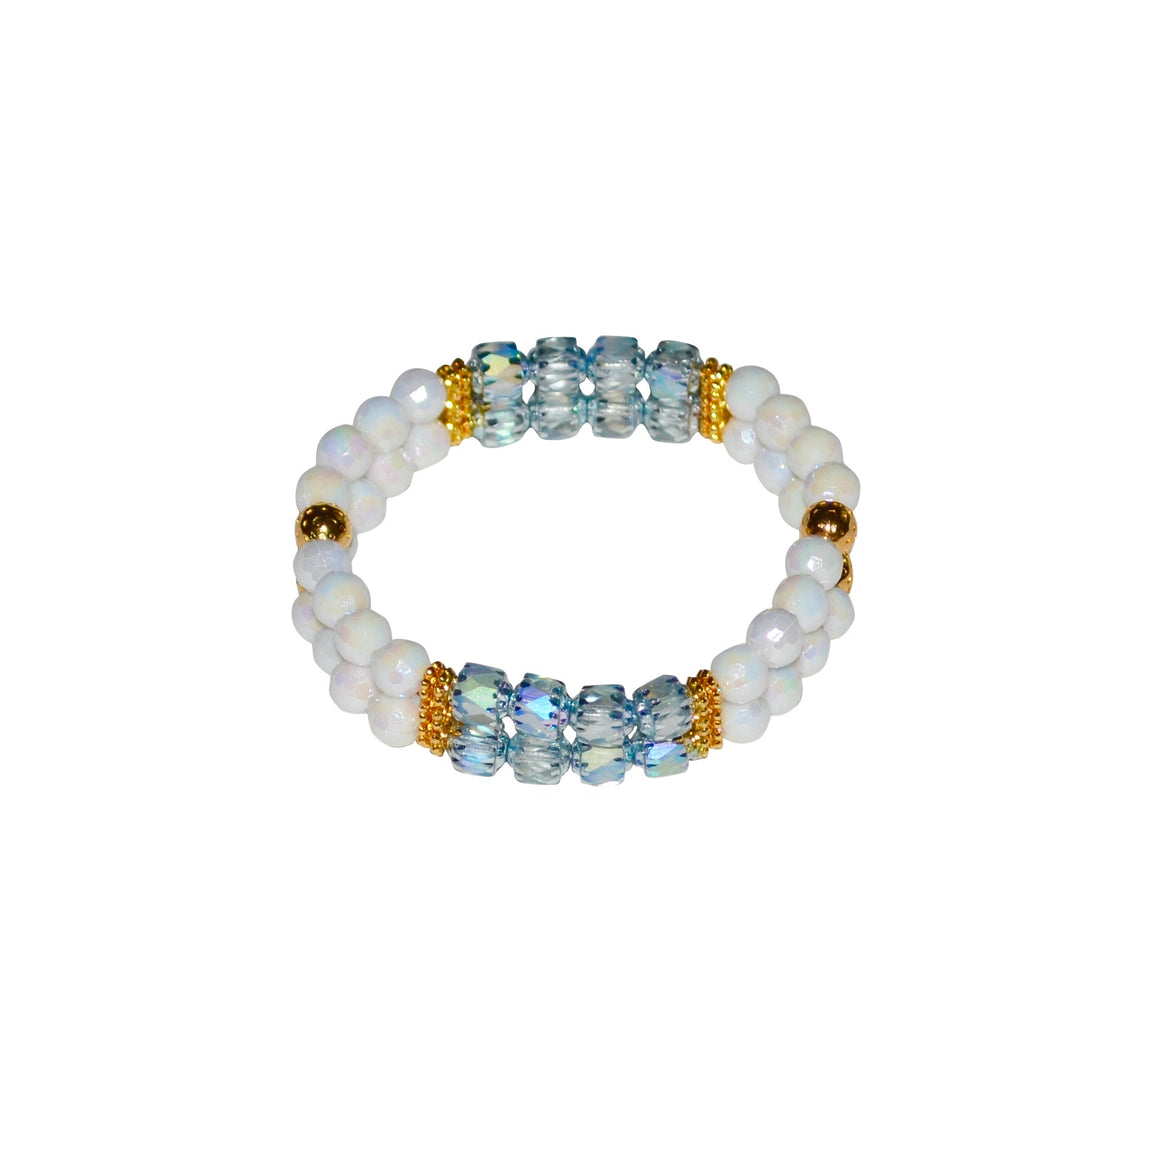 TATE HUDSON MINI CUFF IN WHITE AND LIGHT BLUE GREEN